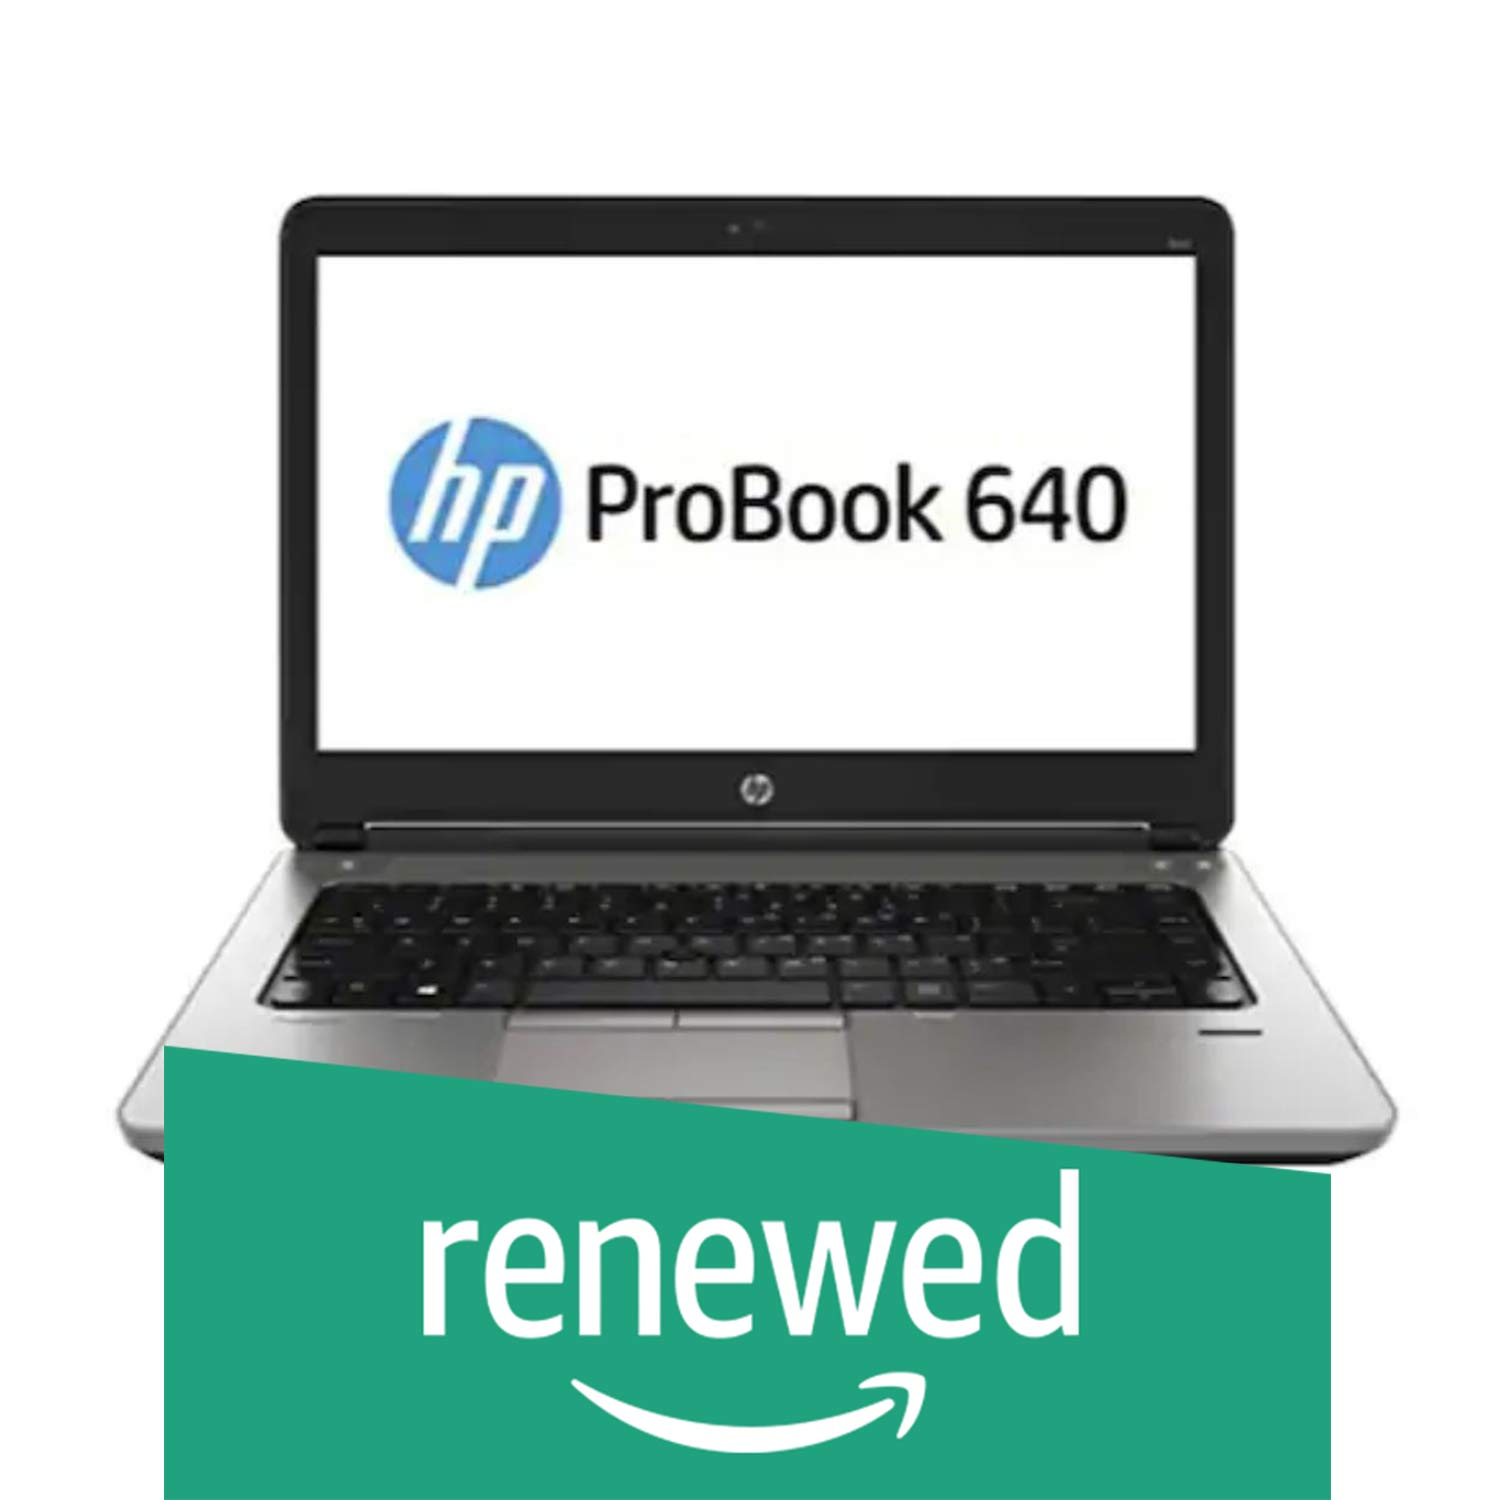 (Renewed) HP Probook 640 G1 (CORE I5 4TH GEN/4GB/500GB/WEBCAM/14''/DOS) (Black)